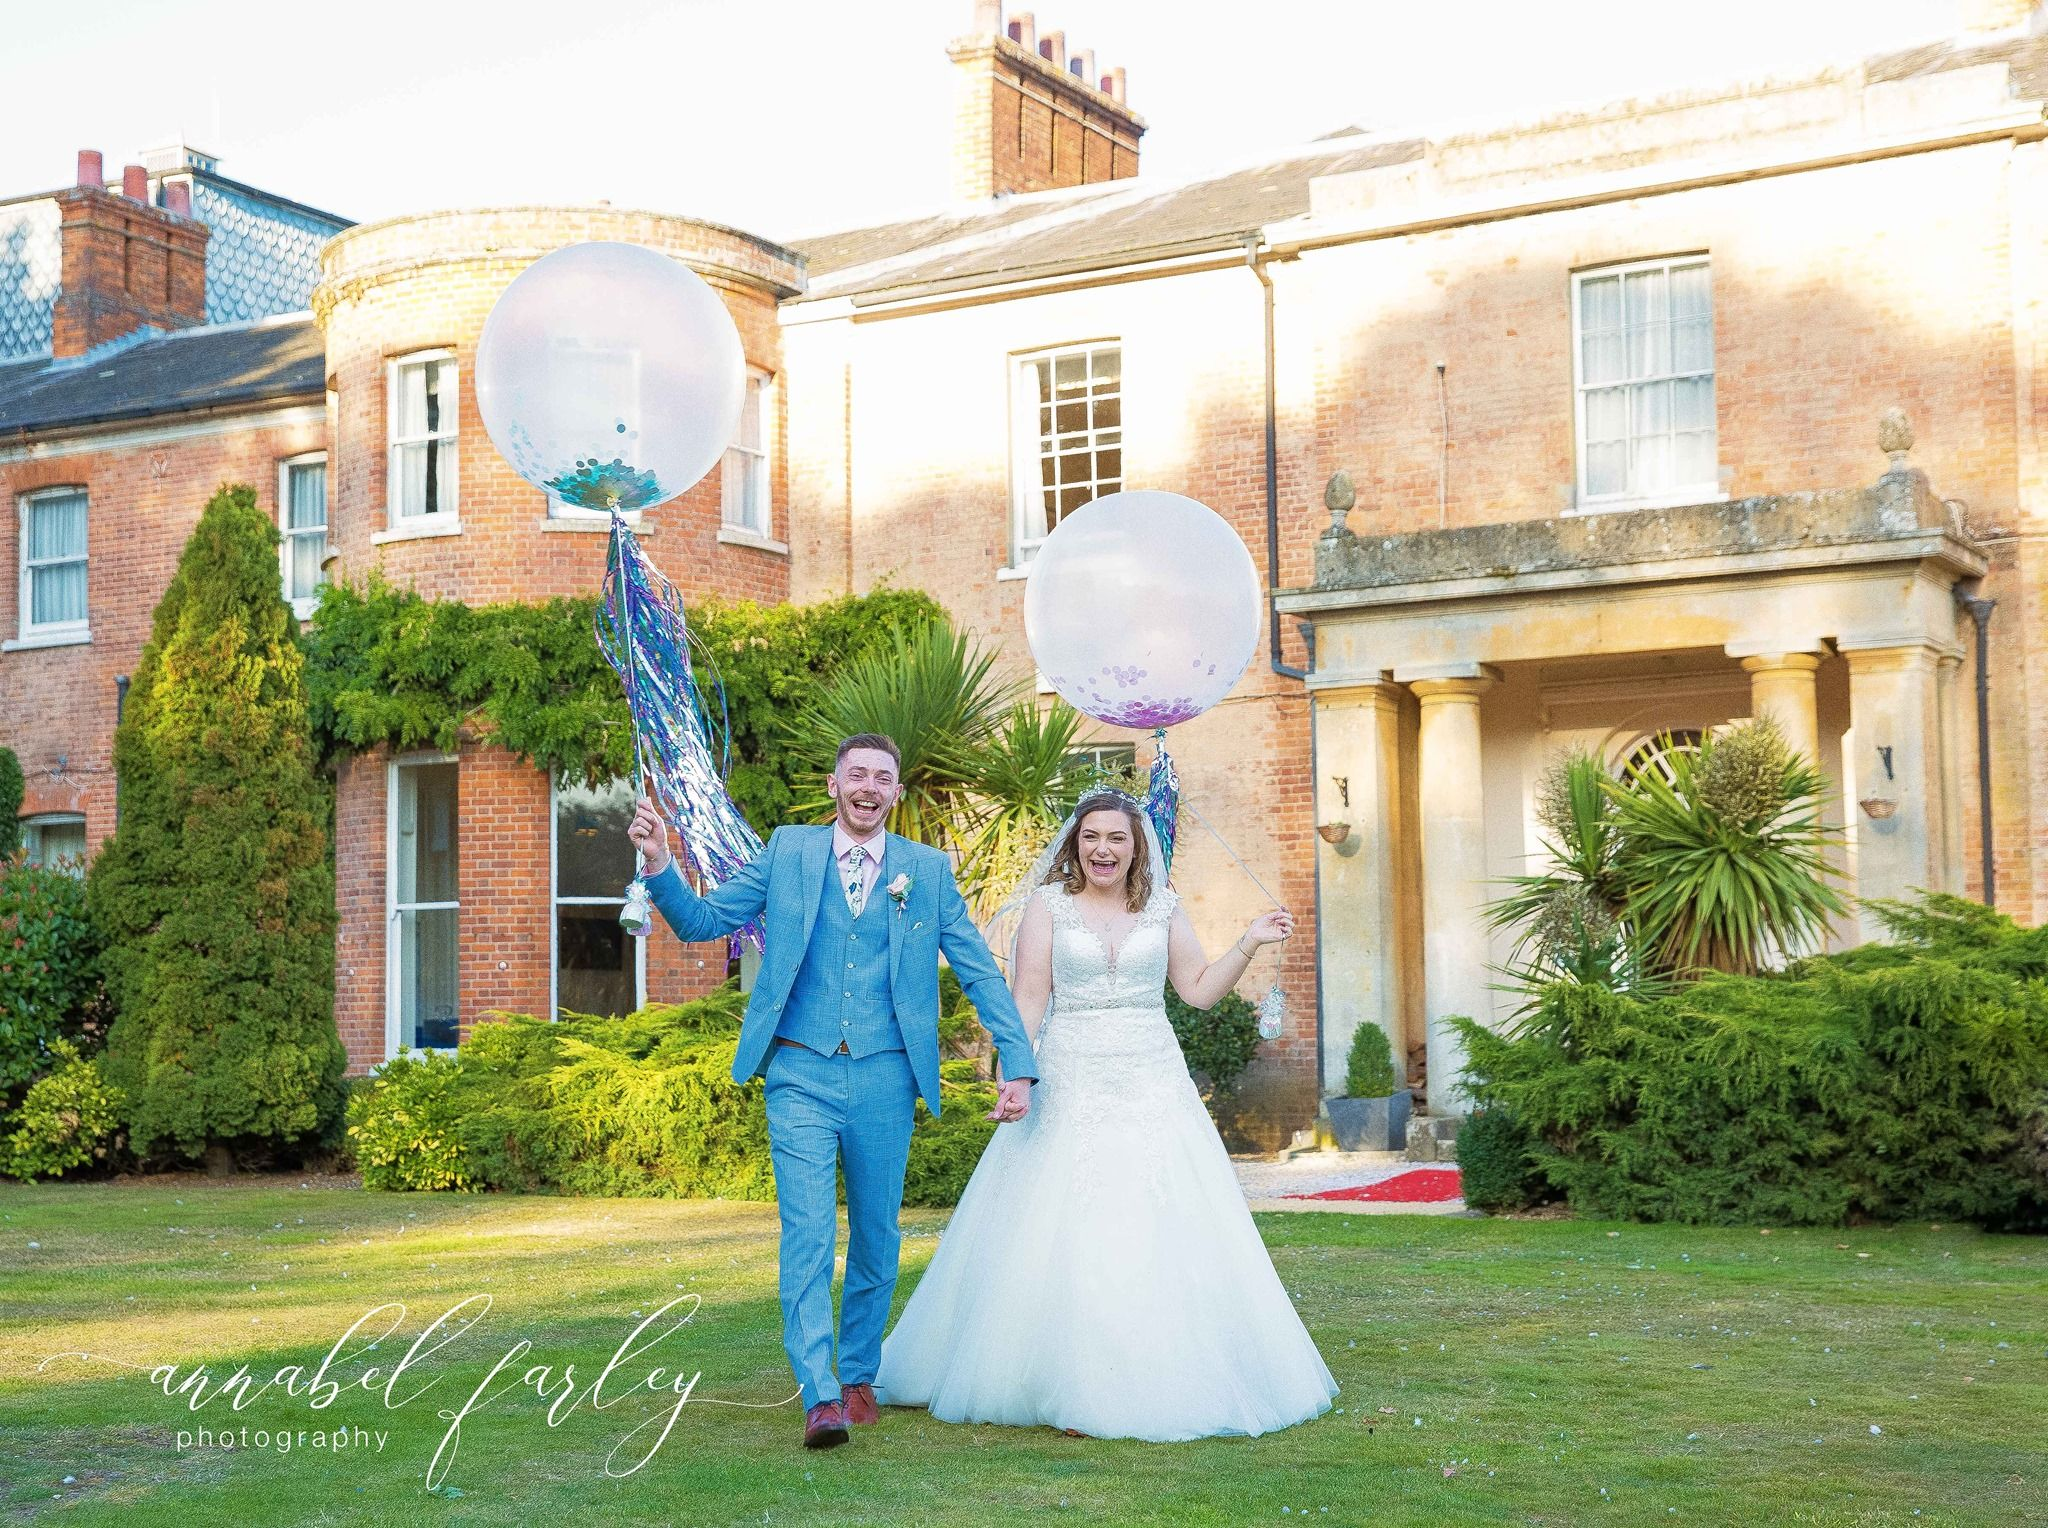 Those smiles say it all! Huge congratulations to Sam and Oli who married yesterday at Mercure Newbury Elcot Park 🎉